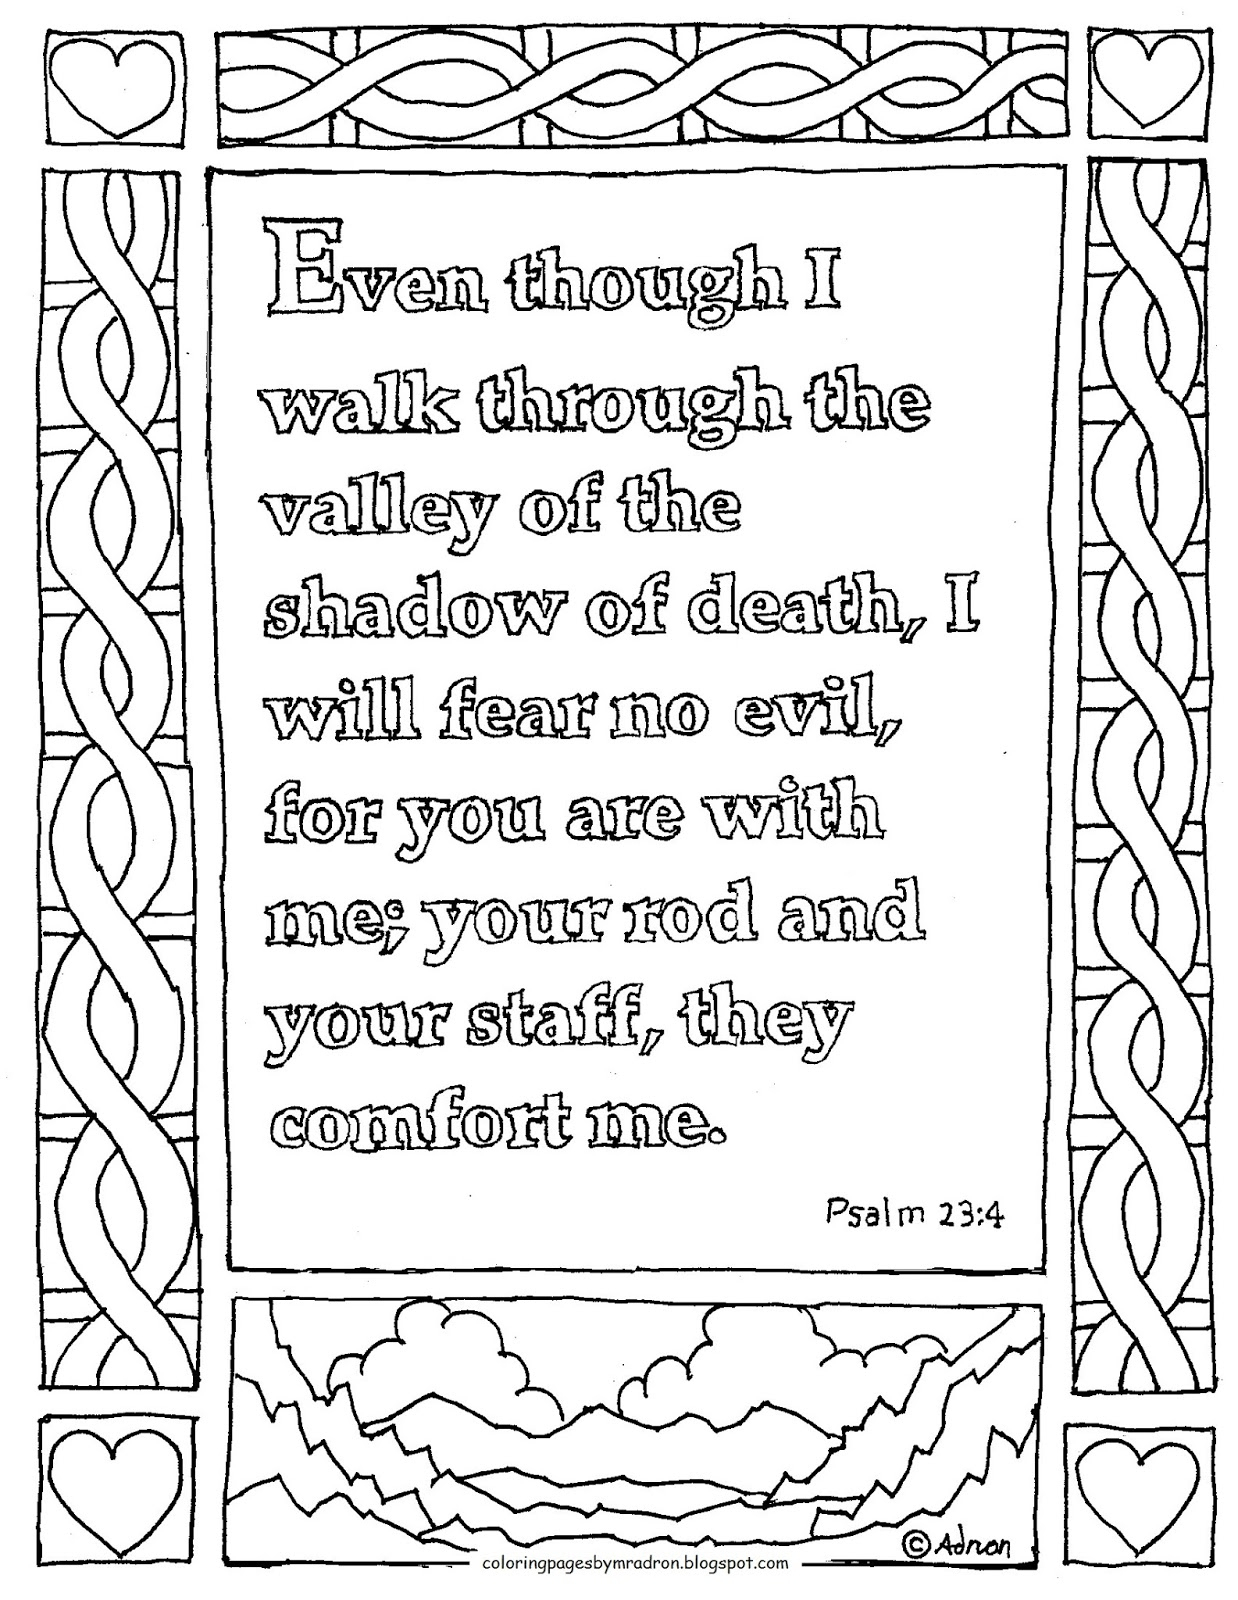 psalm 23 printable coloring pages Download-Impressive Design psalm 23 coloring page Coloring Pages for Kids by Mr Adron Printable Coloring Page 4-n